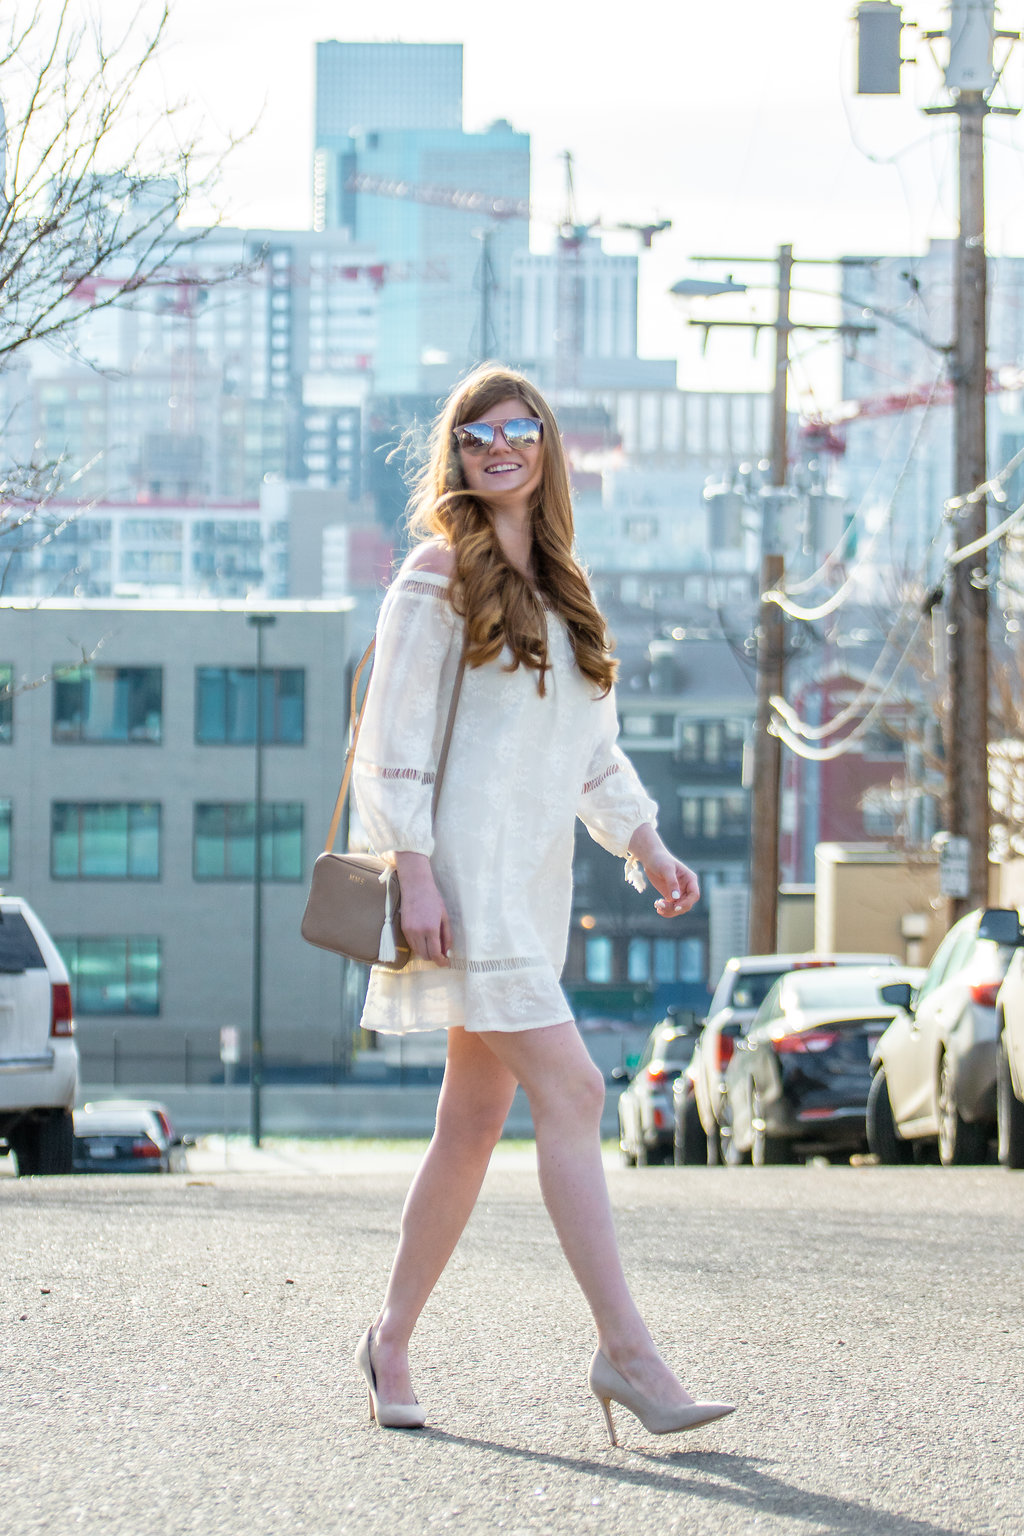 Lifestyle blogger Mollie Sheperdson shares details on the new LiketoKnow.it app